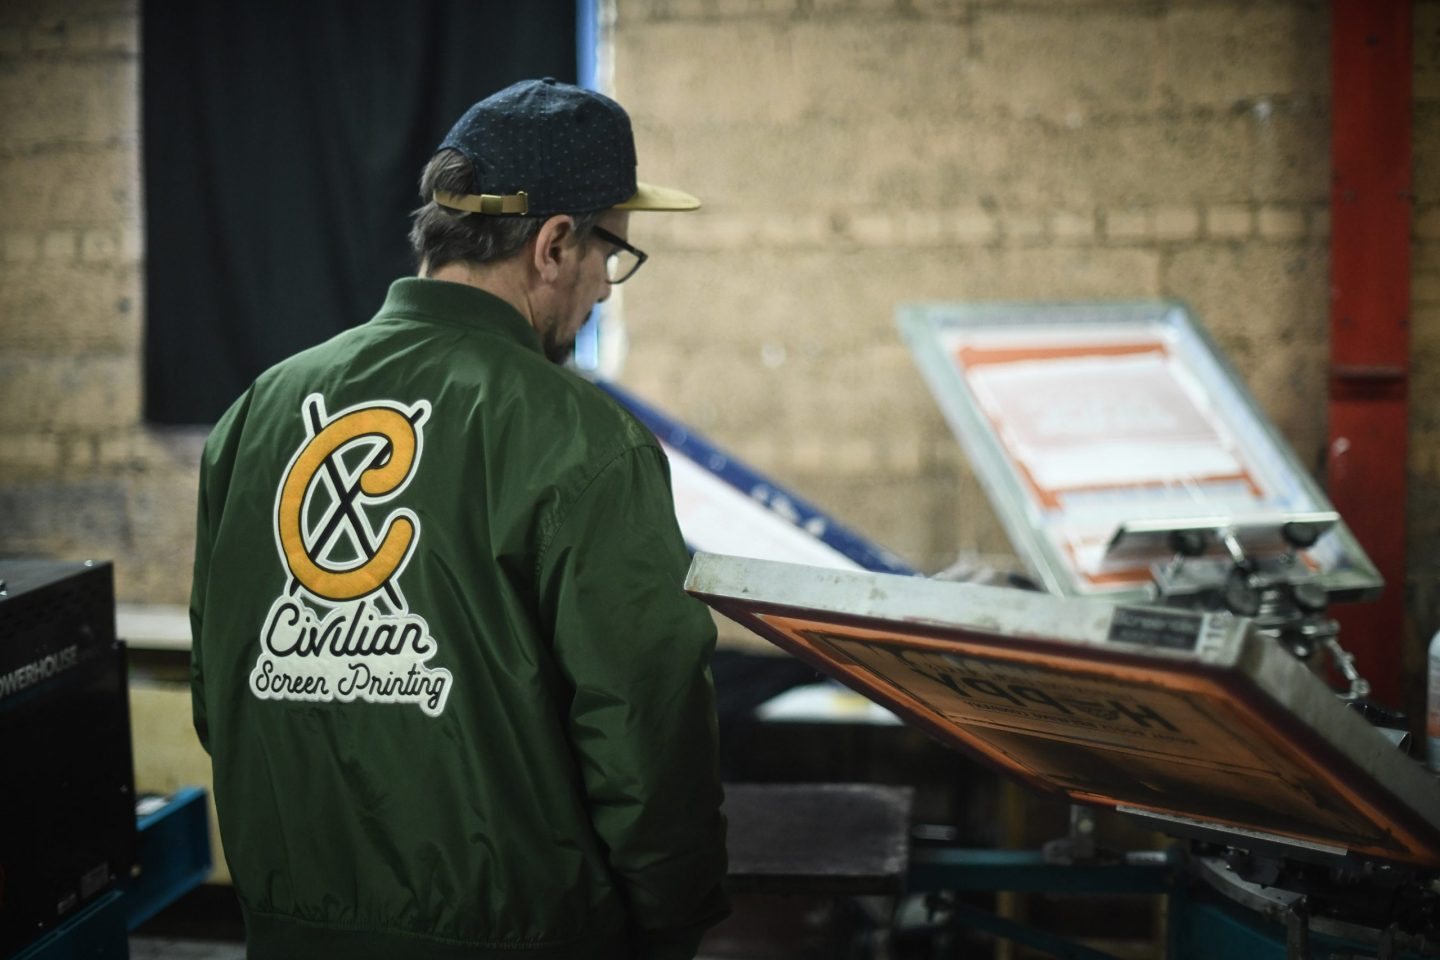 FASHION FORWARD:  HOW CIVILIAN SCREEN PRINTING & ALPINE PRINT COMPANY ARE CRAFTING HOPE